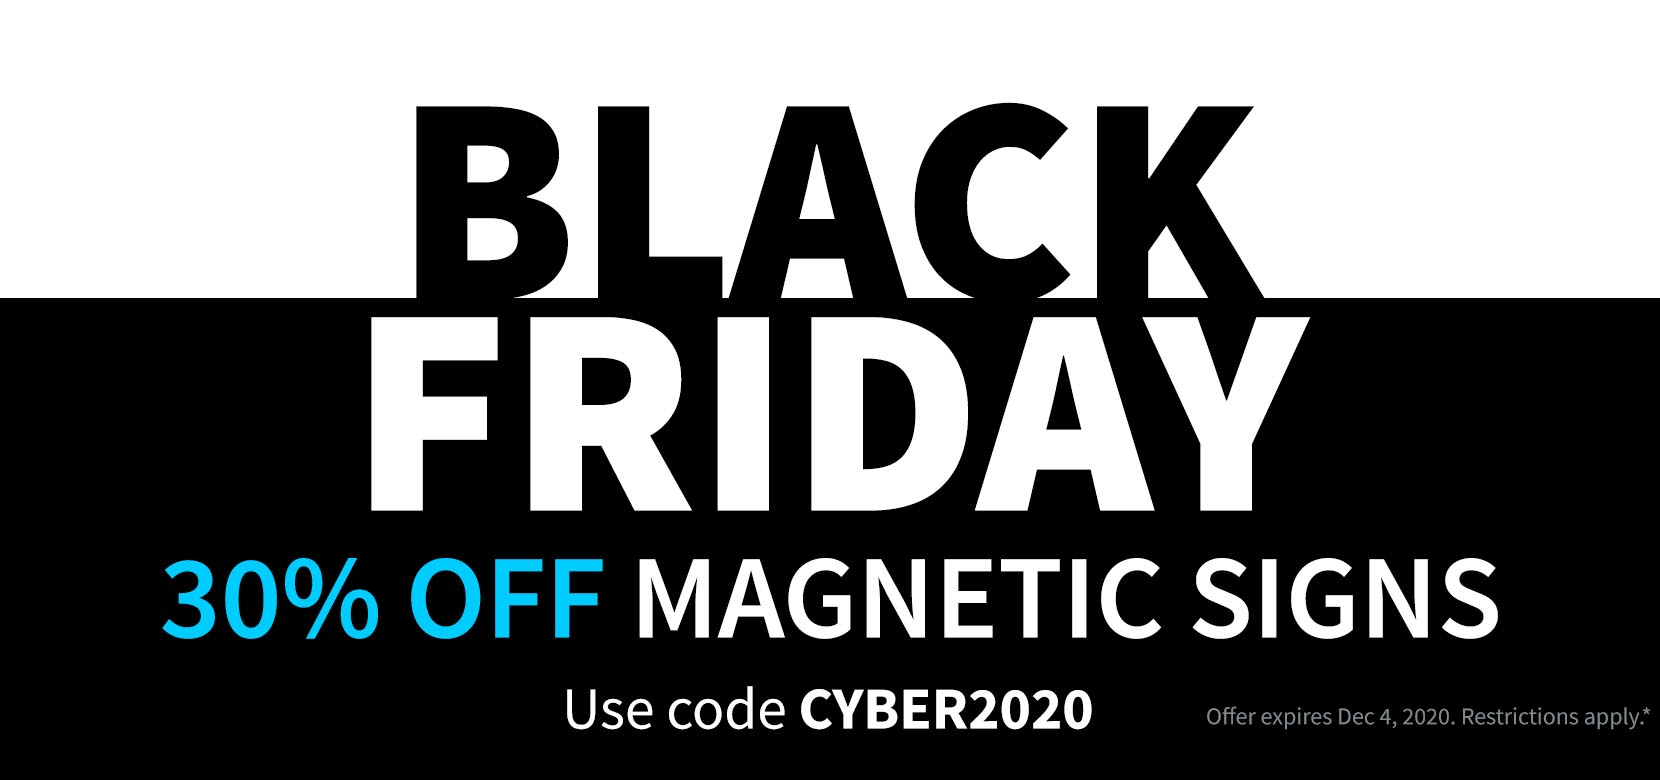 Black Friday CYBER2020 Car Magnetic Signs